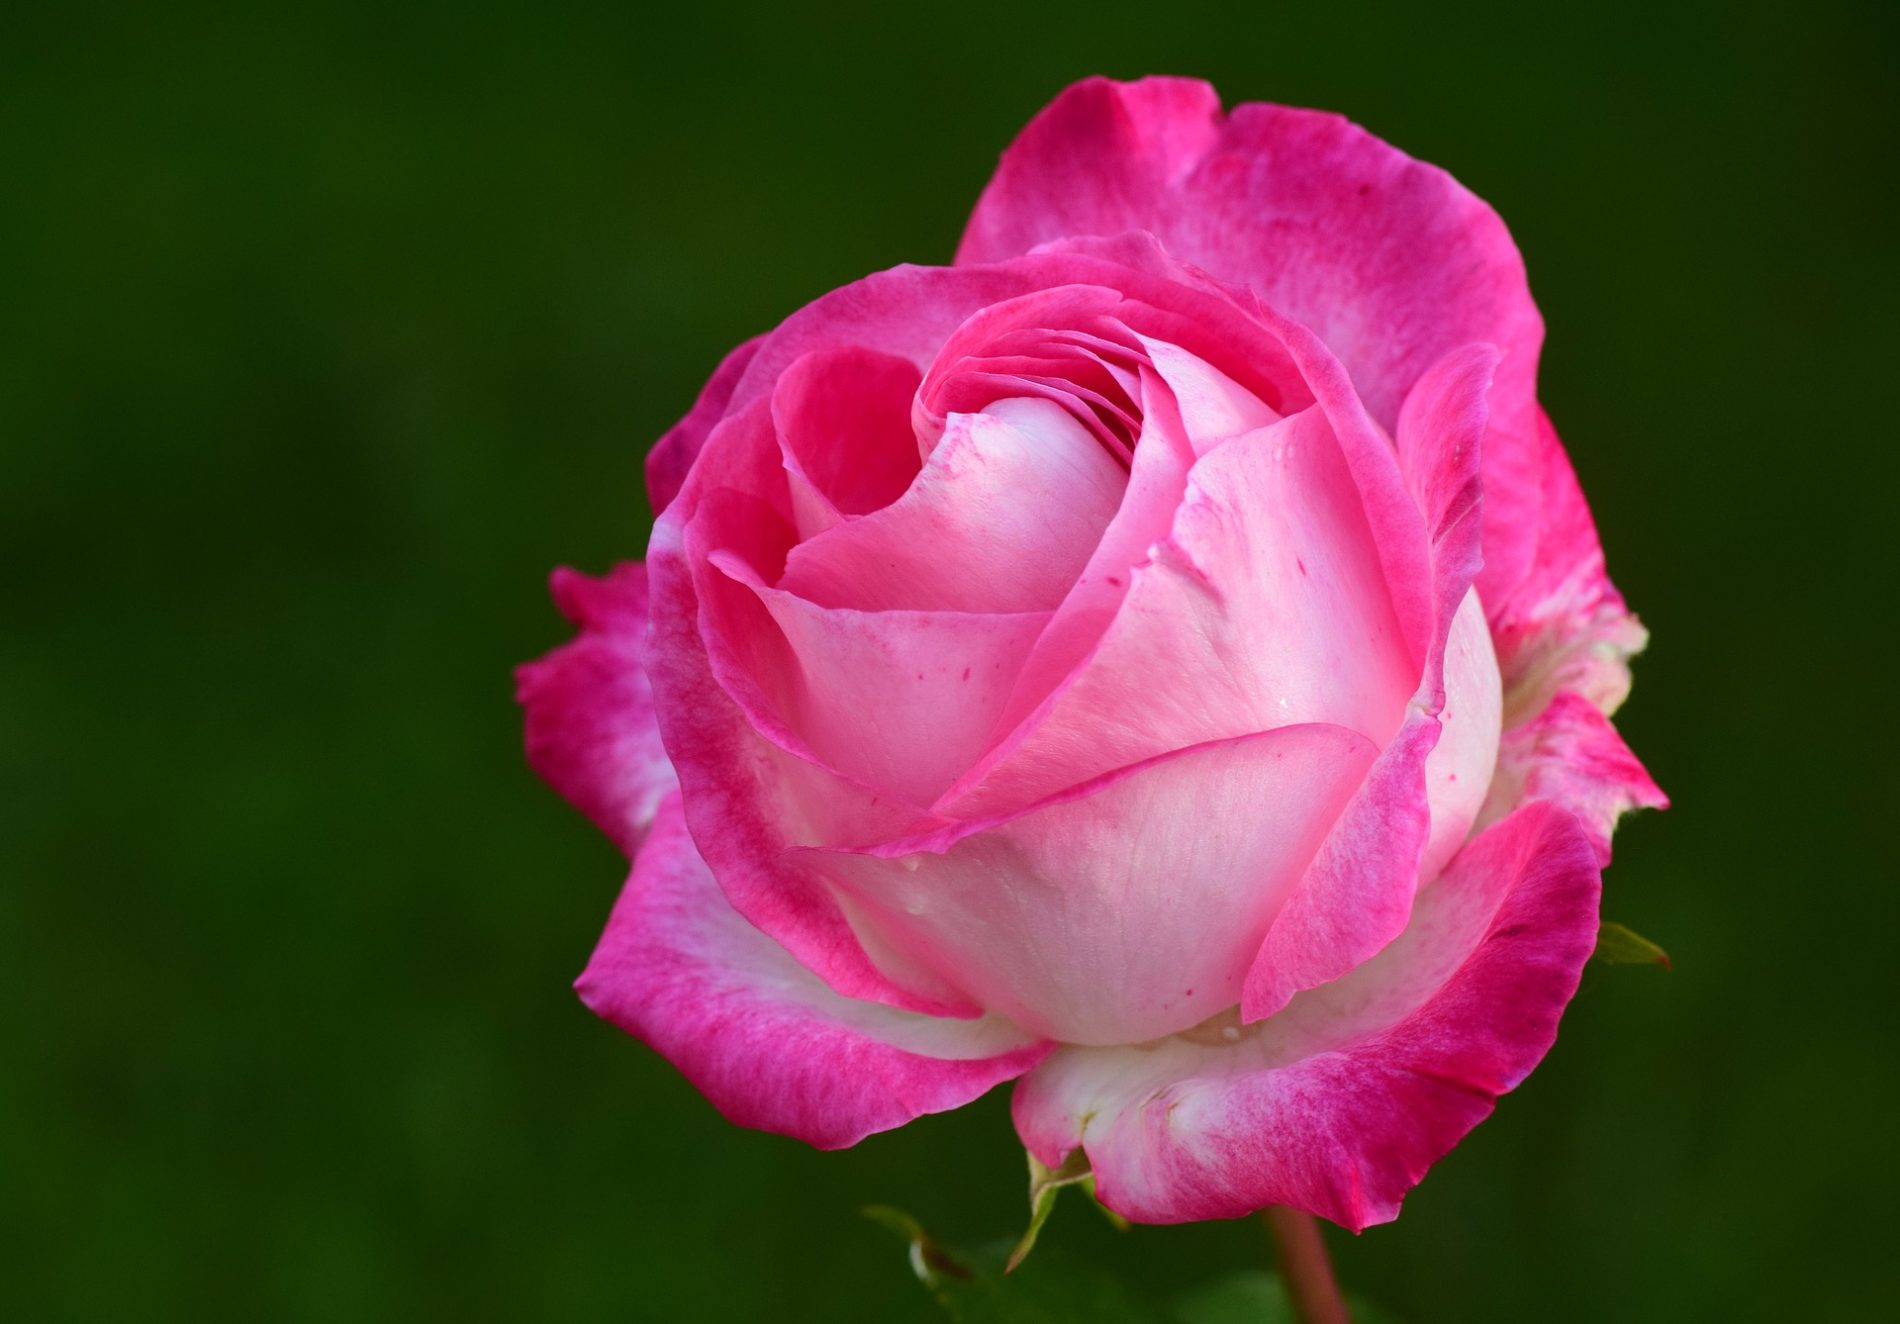 Roses: A Gardener's Guide and Plant Profile